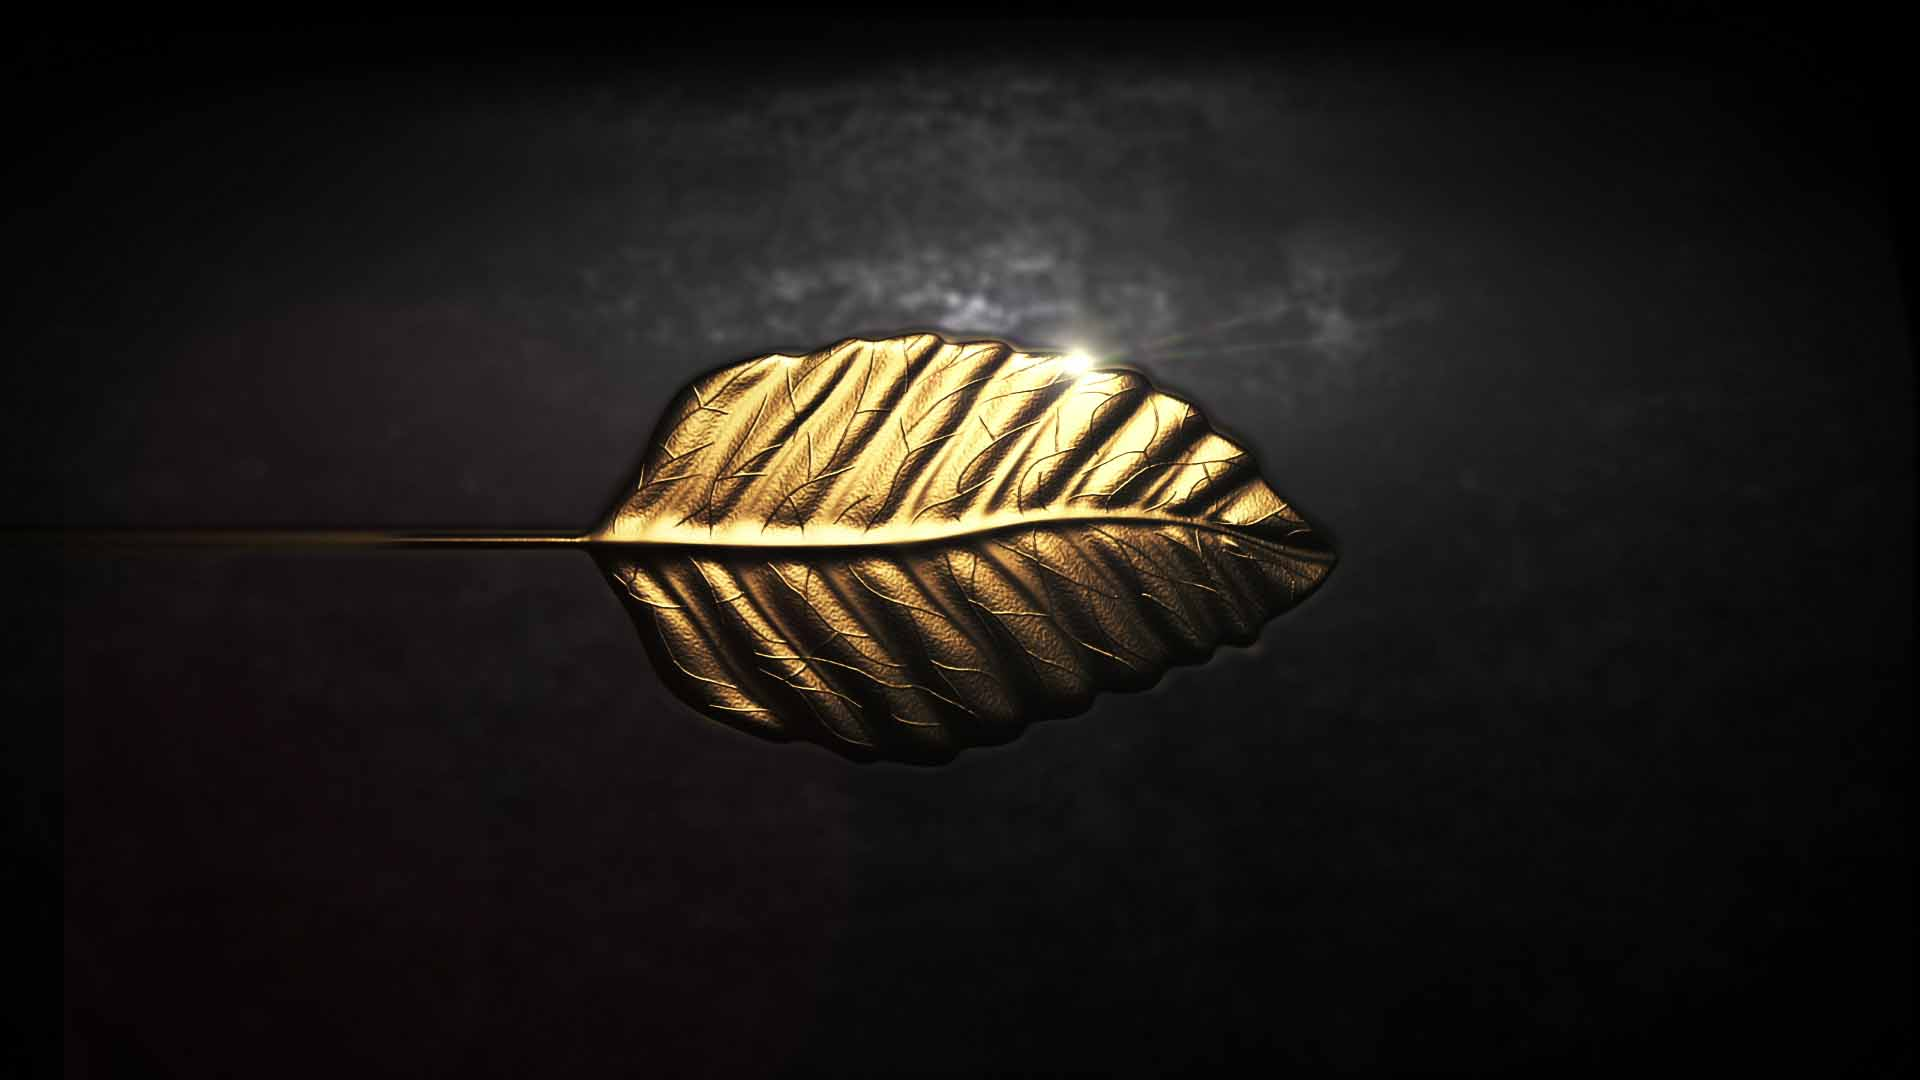 A CG golden leaf